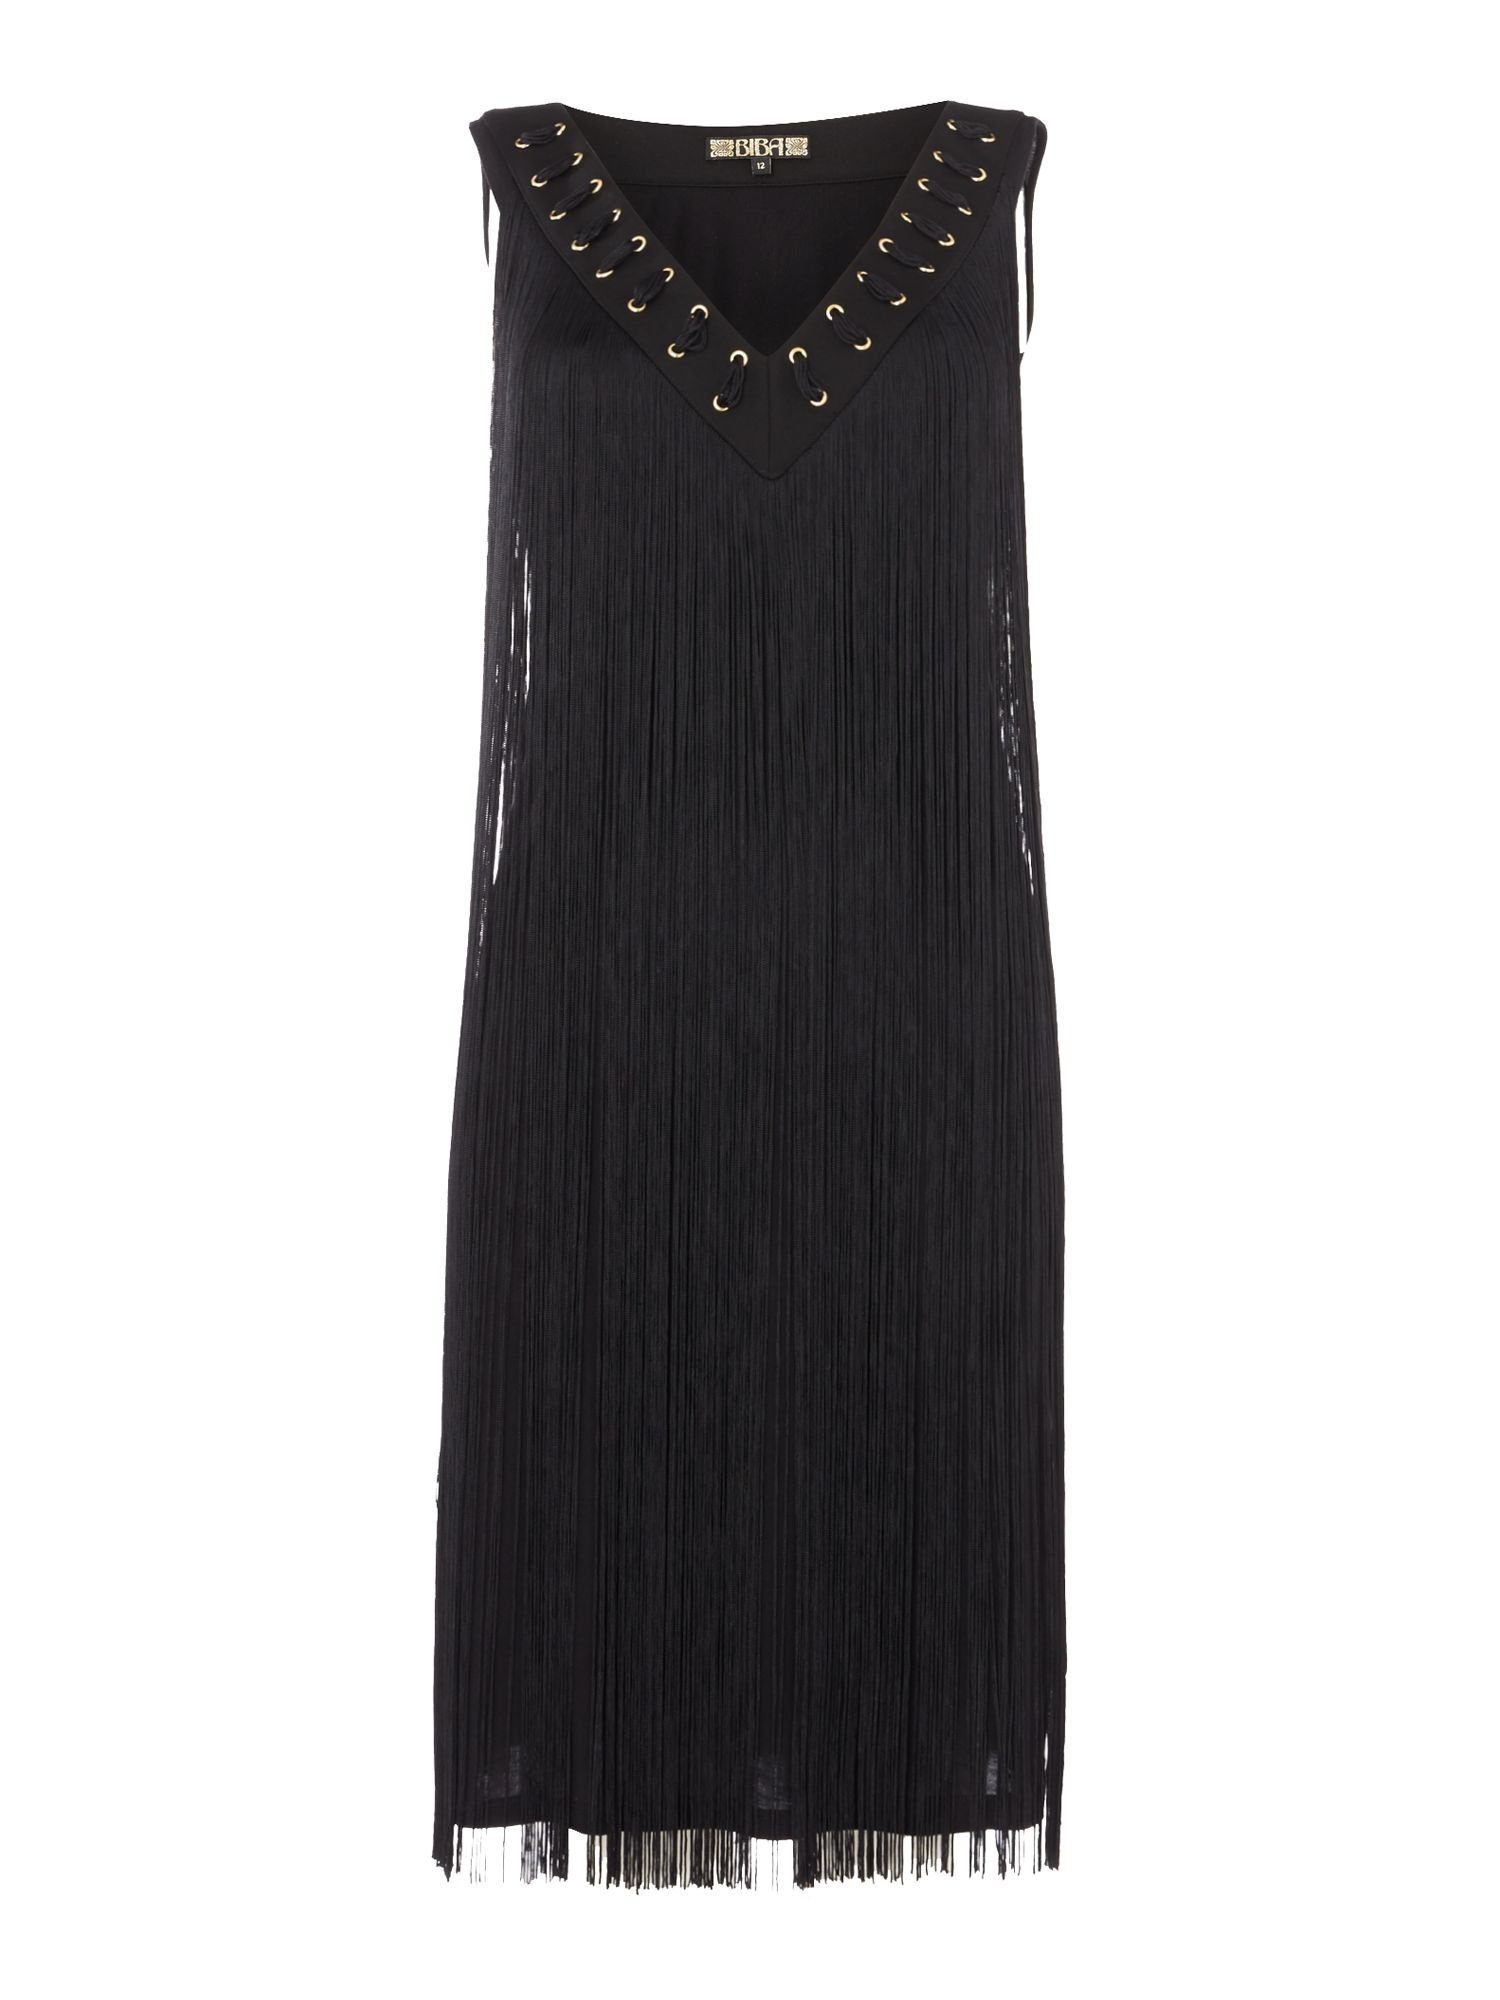 Biba Neck detail fully fringed jersey dress, Black